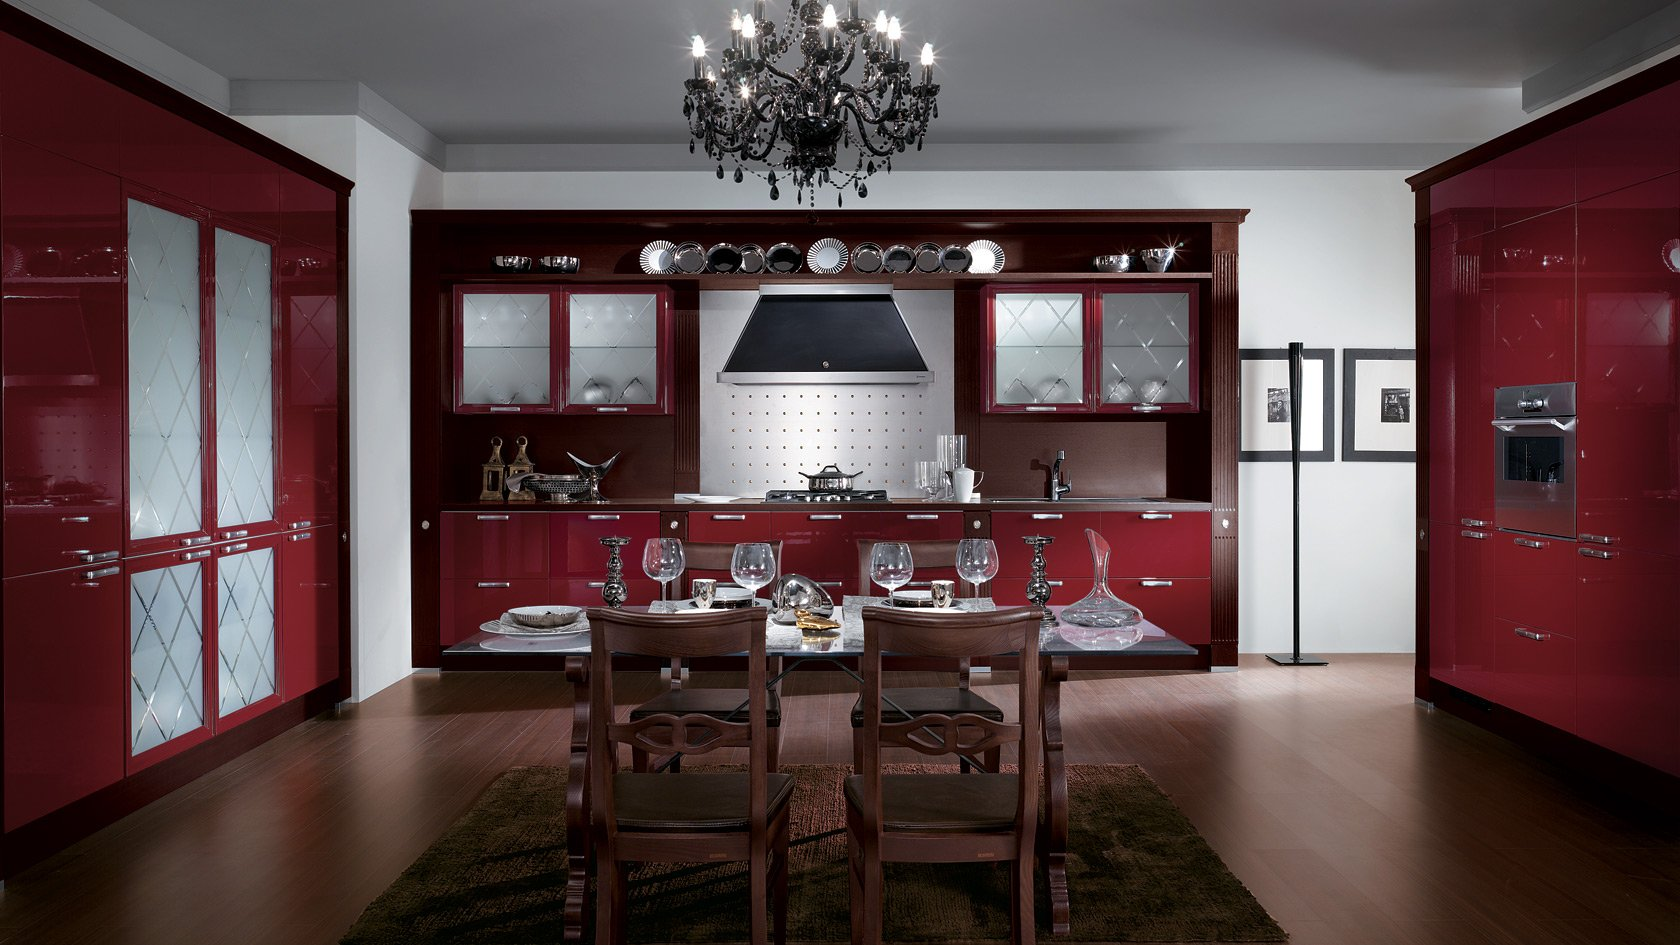 scavolini kitchen cabinets with Cucina Salone Open Space Classico on Yourkitchen further Motus also About in addition Las 50 Cocinas Blancas Modernas Mas Bonitas in addition Black Kitchen.